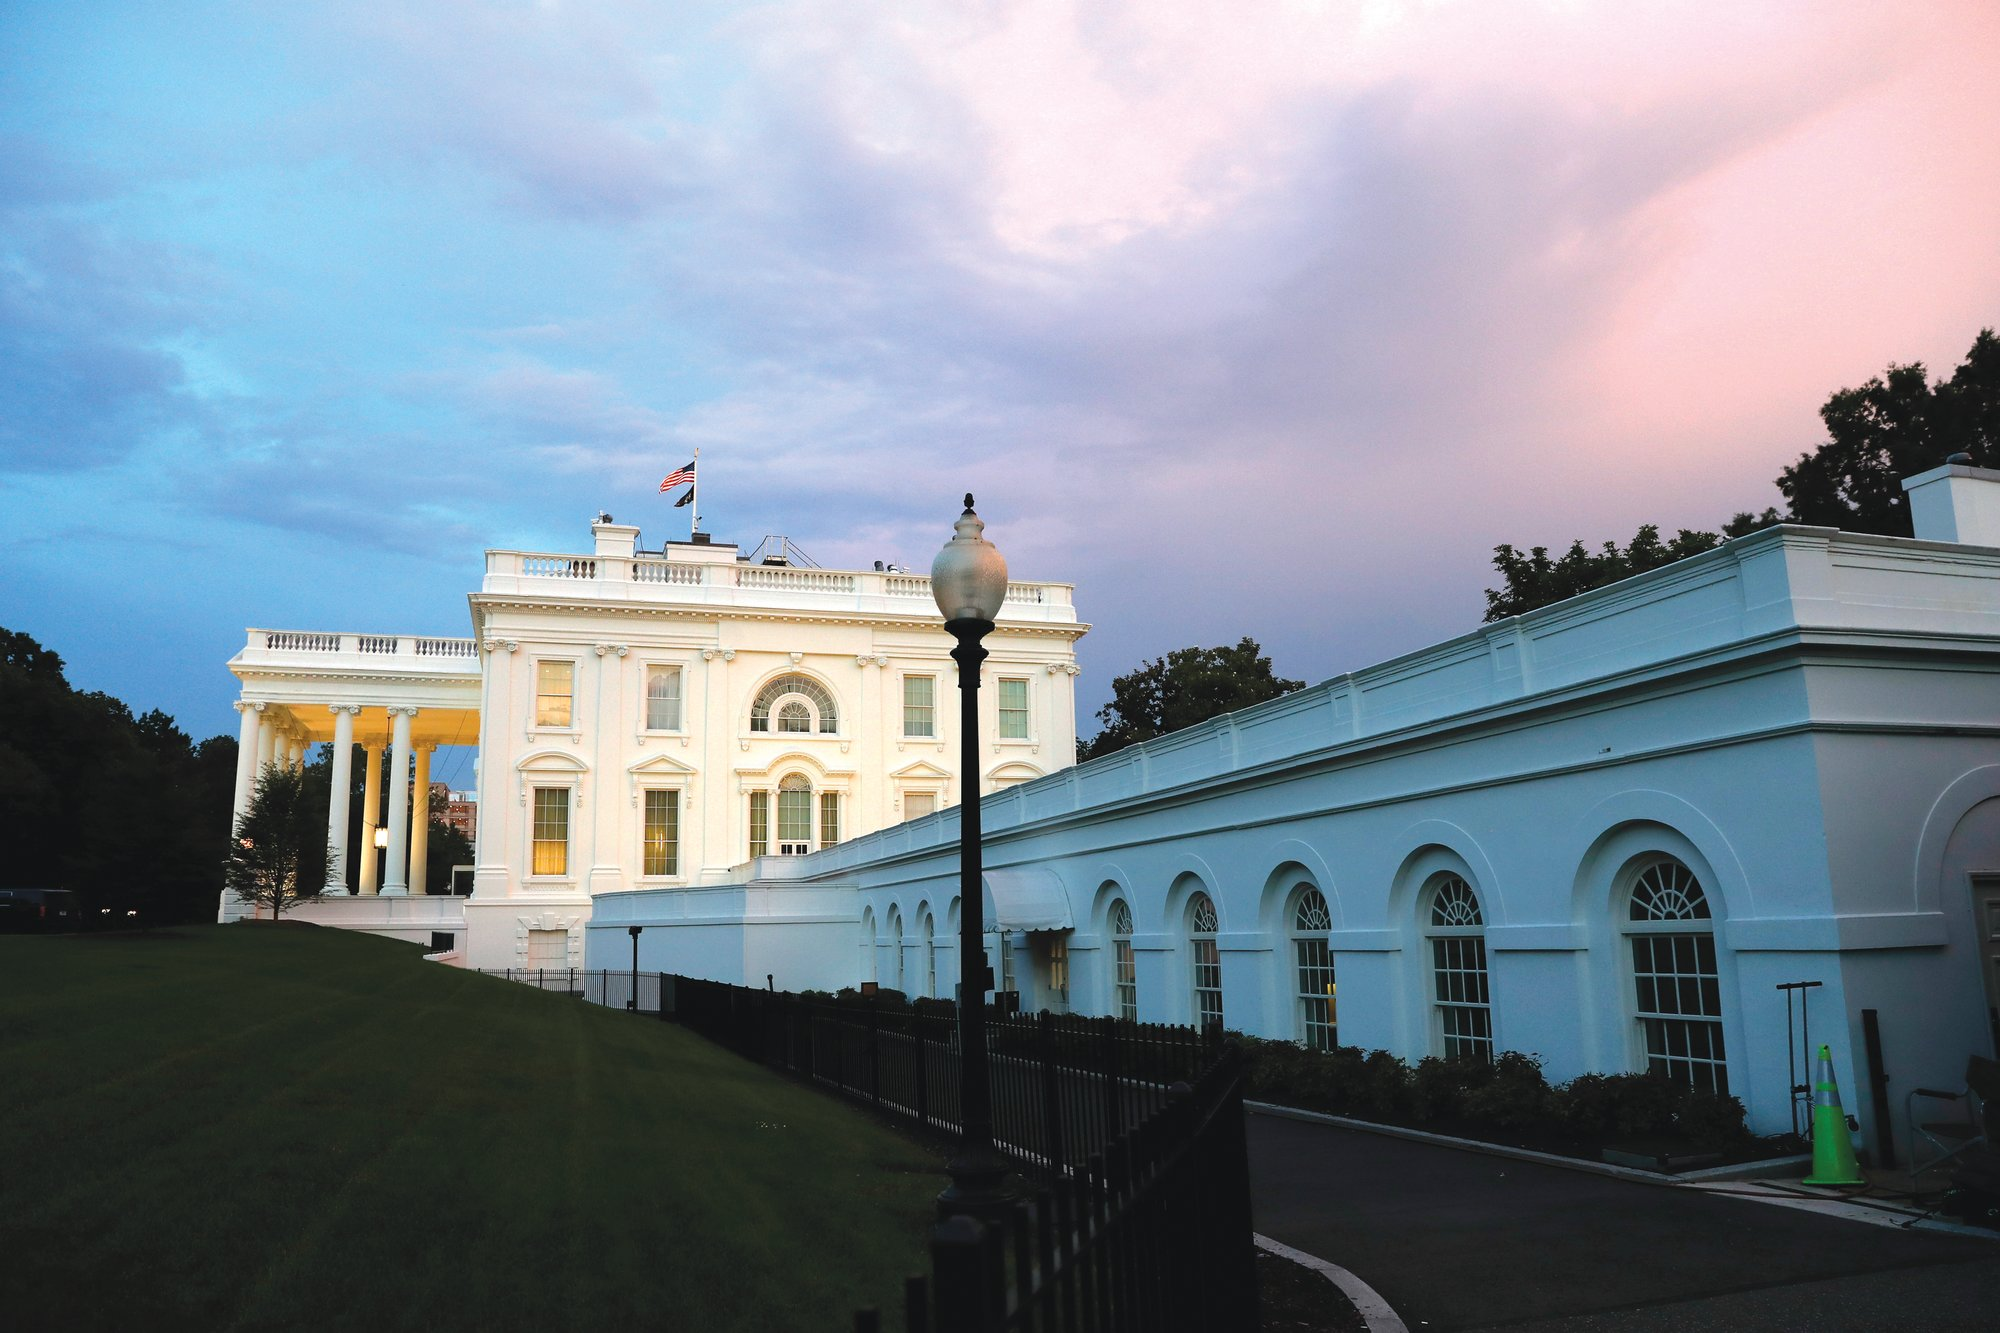 THE ASSOCIATED PRESS  Sunset colors fill the sky over the White House on May 18 in Washington. Hubert D. Osteen, editor and publisher of The Sumter Daily Item, was invited to the White House in 1963.